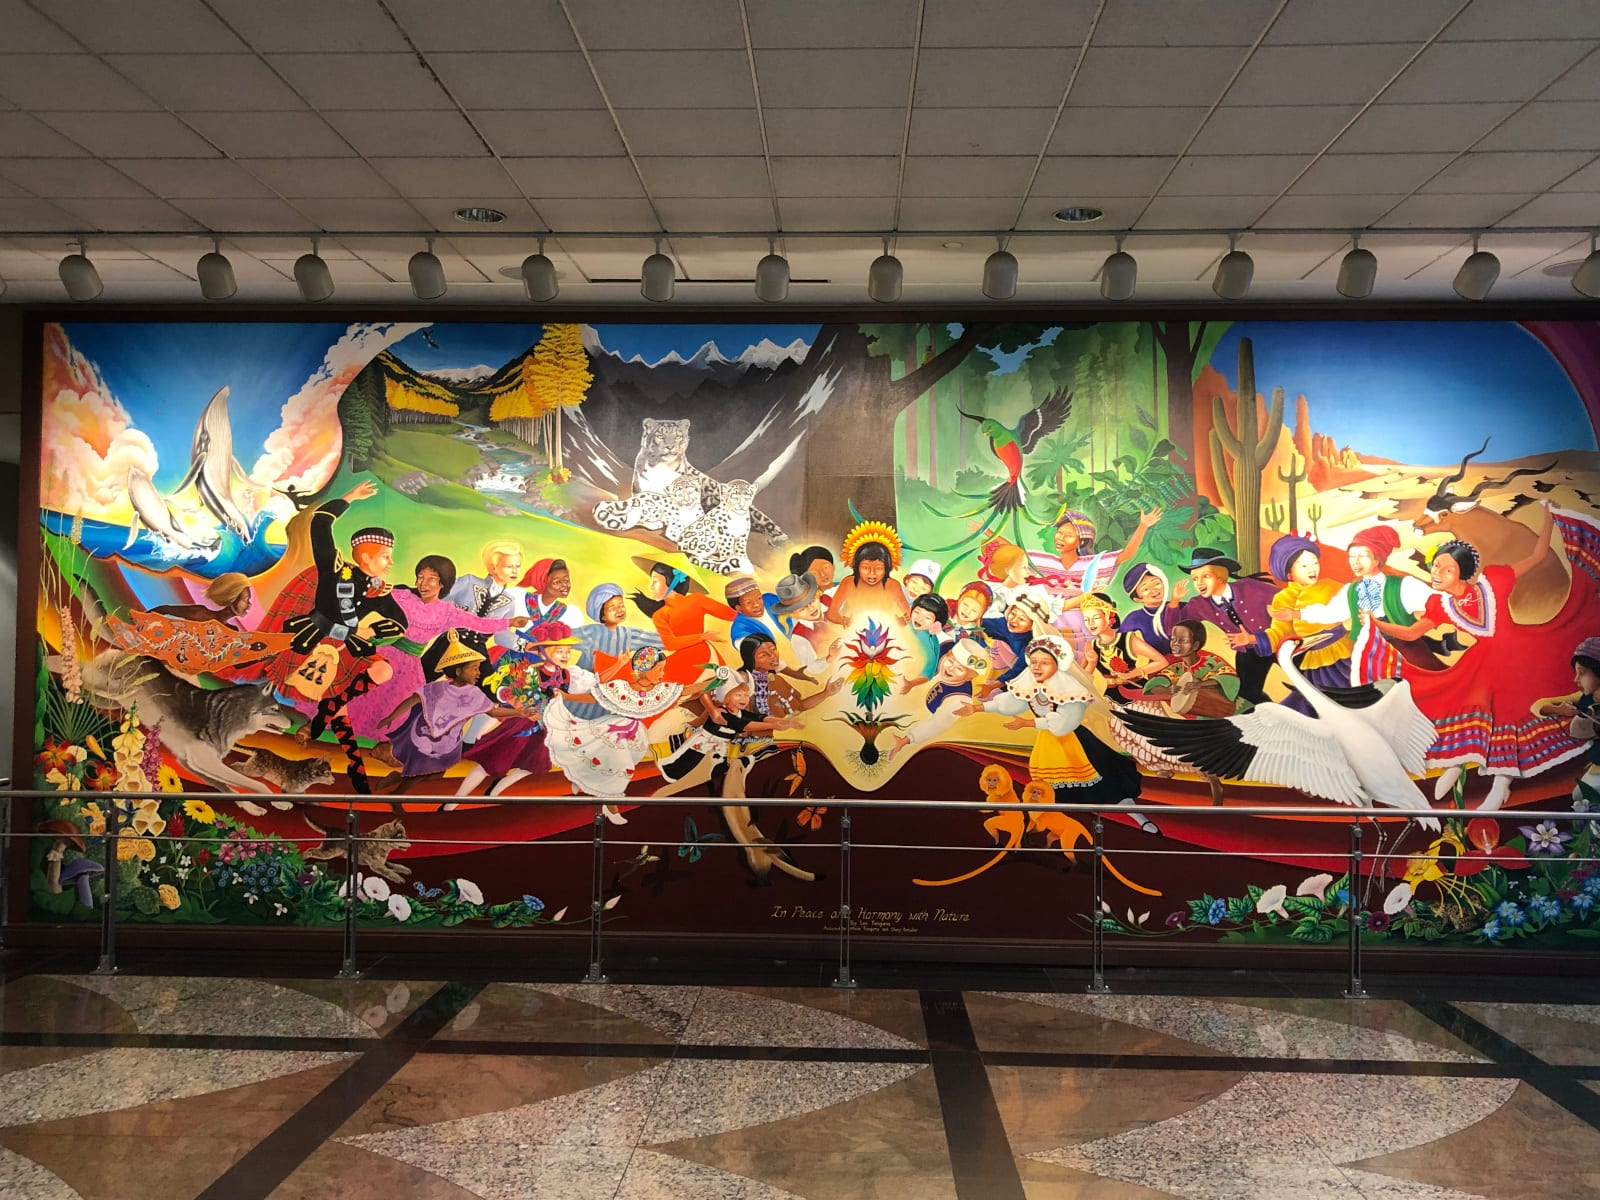 Denver Airport Mural In Peace and Harmony with Nature Second